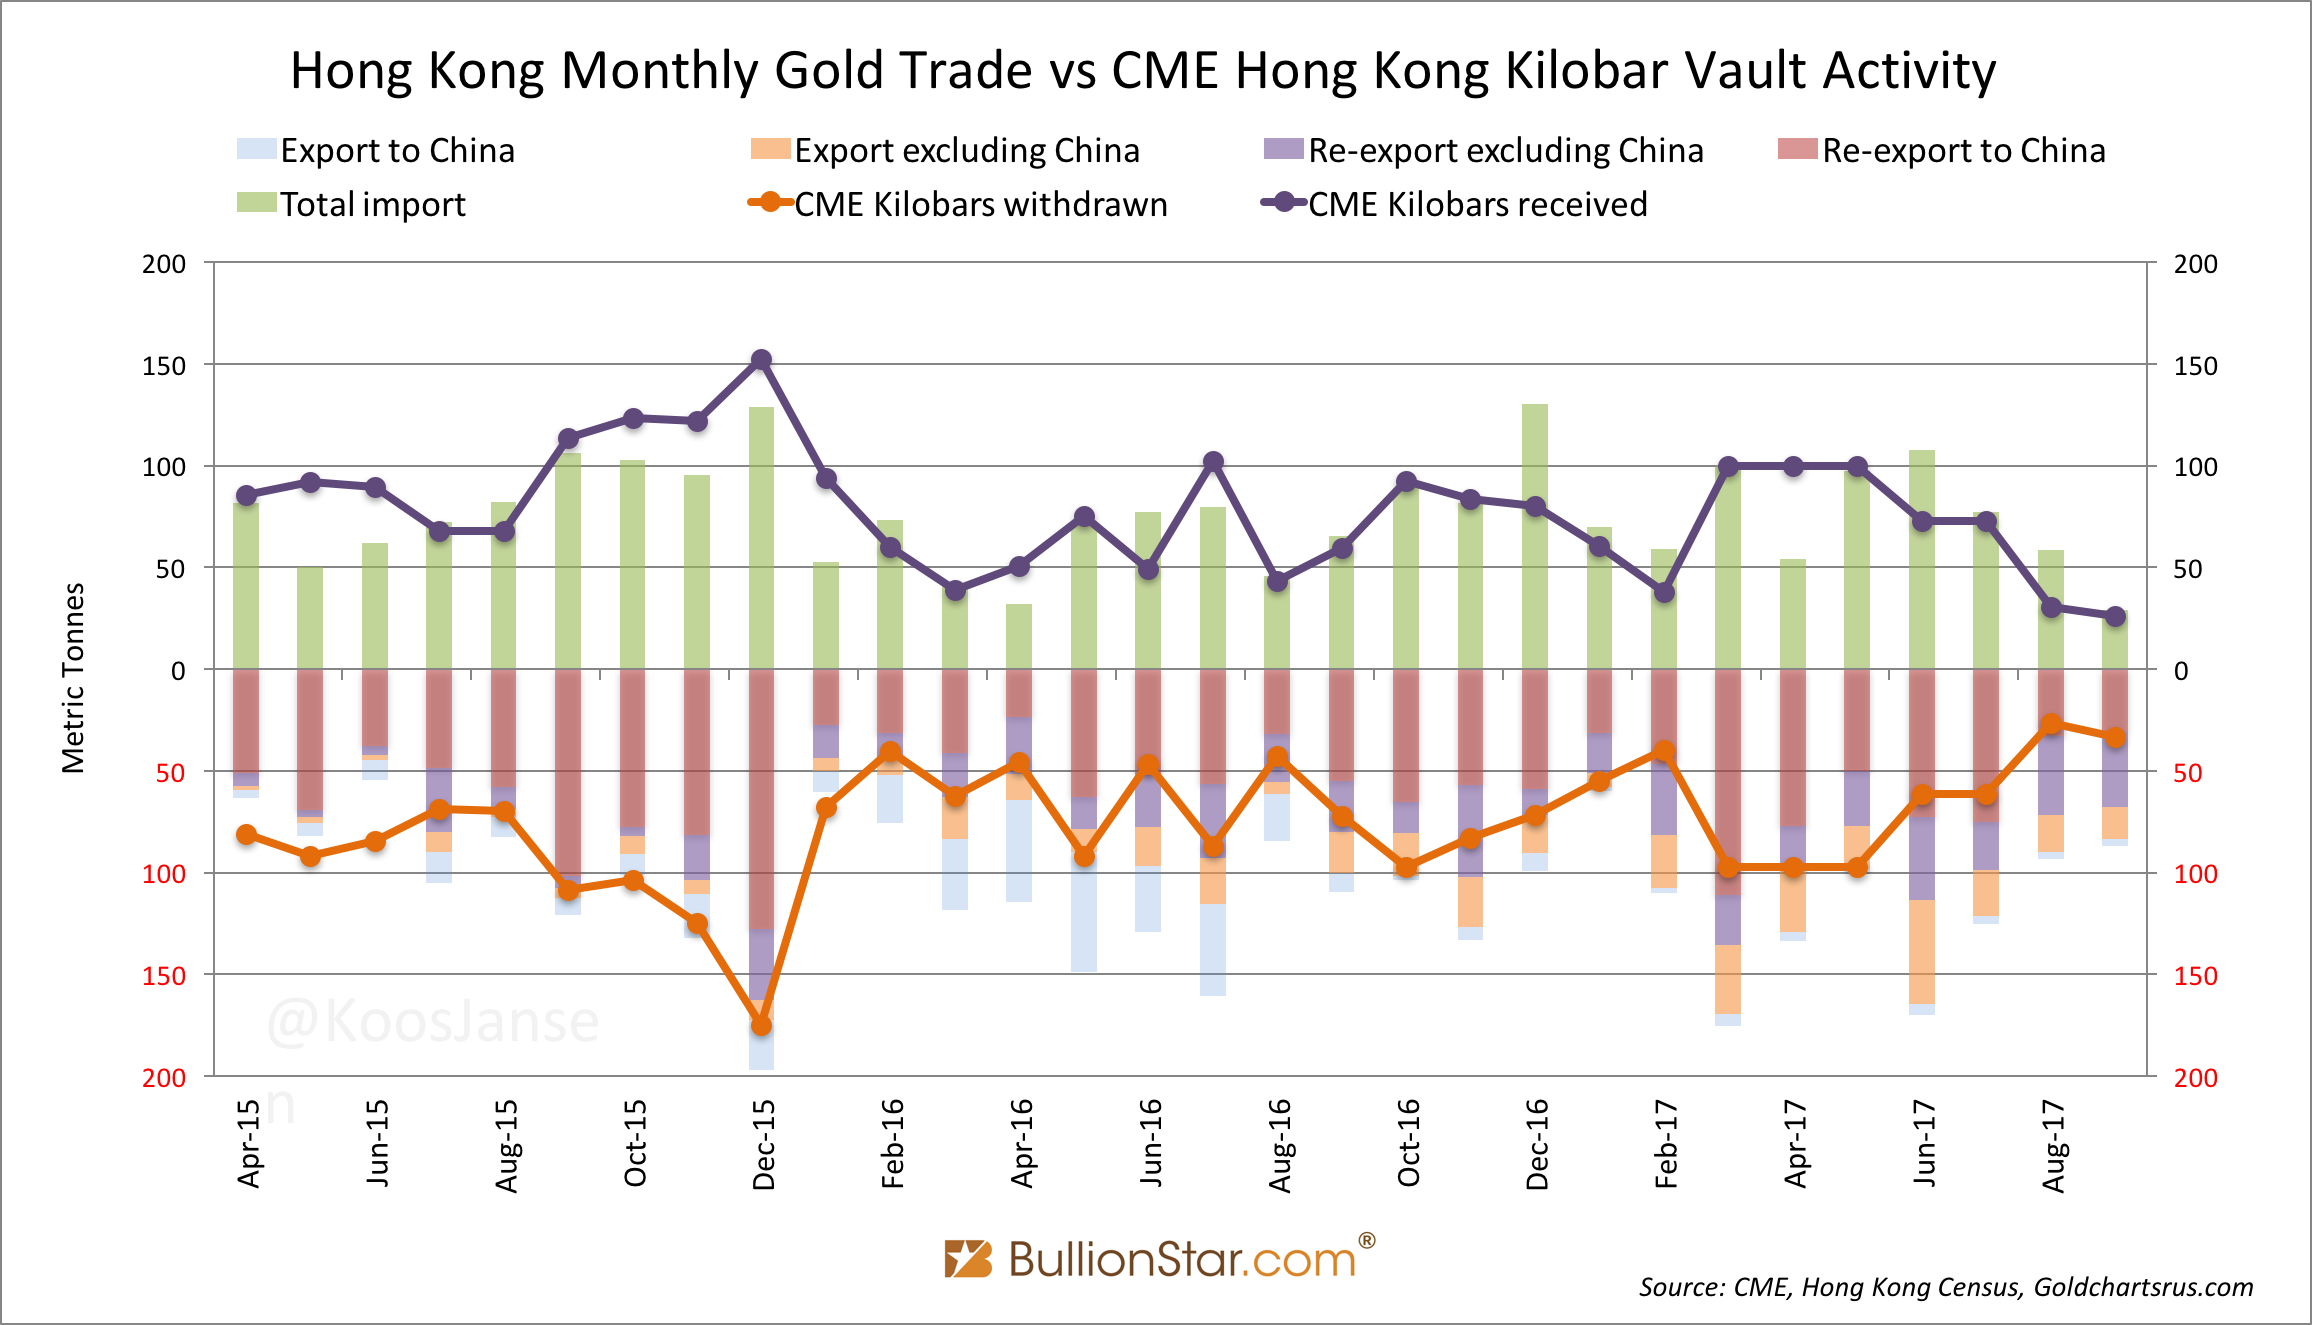 Hong Kong Monthly Gold Trade and Hong Kong Kilobar Vault Activity, Apr 2015 - Aug 2017